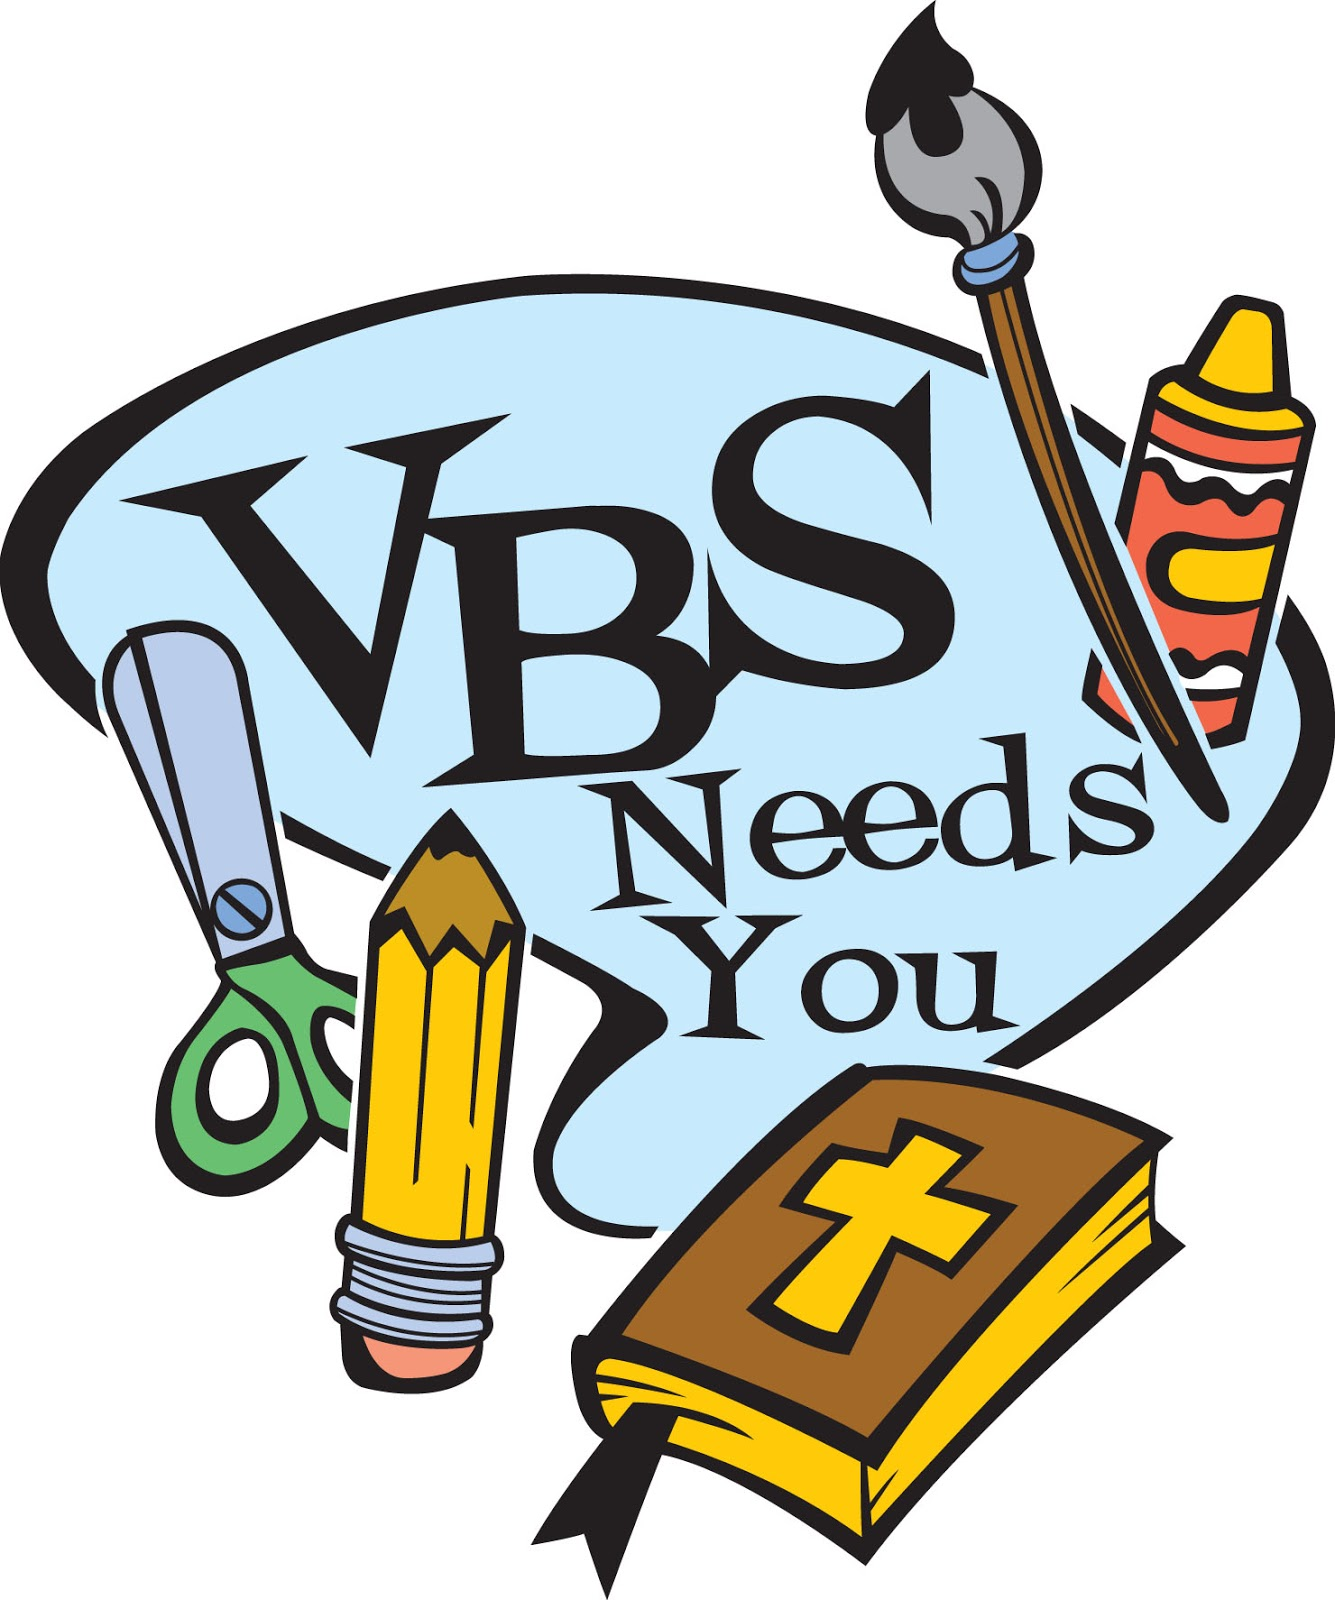 1335x1600 Volunteers Wanted Clip Art Cliparts